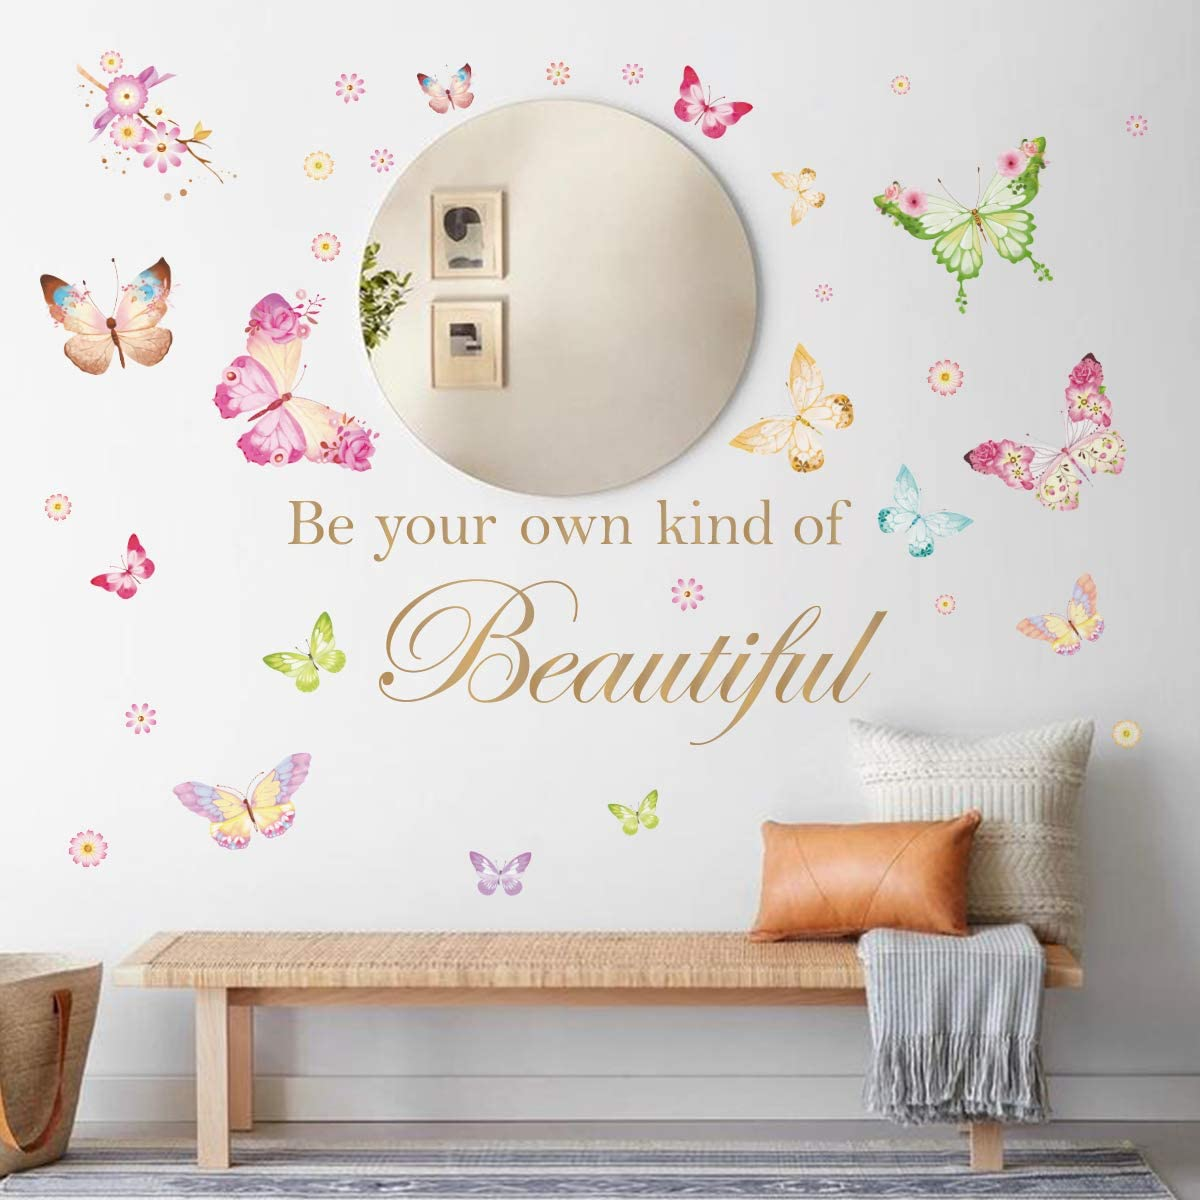 decalmile Butterfly Wall Decals Quotes Be Your Own Kind of Beautiful Inspirational Word Wall Stickers Girls Bedroom Living Room Office Wall Decor